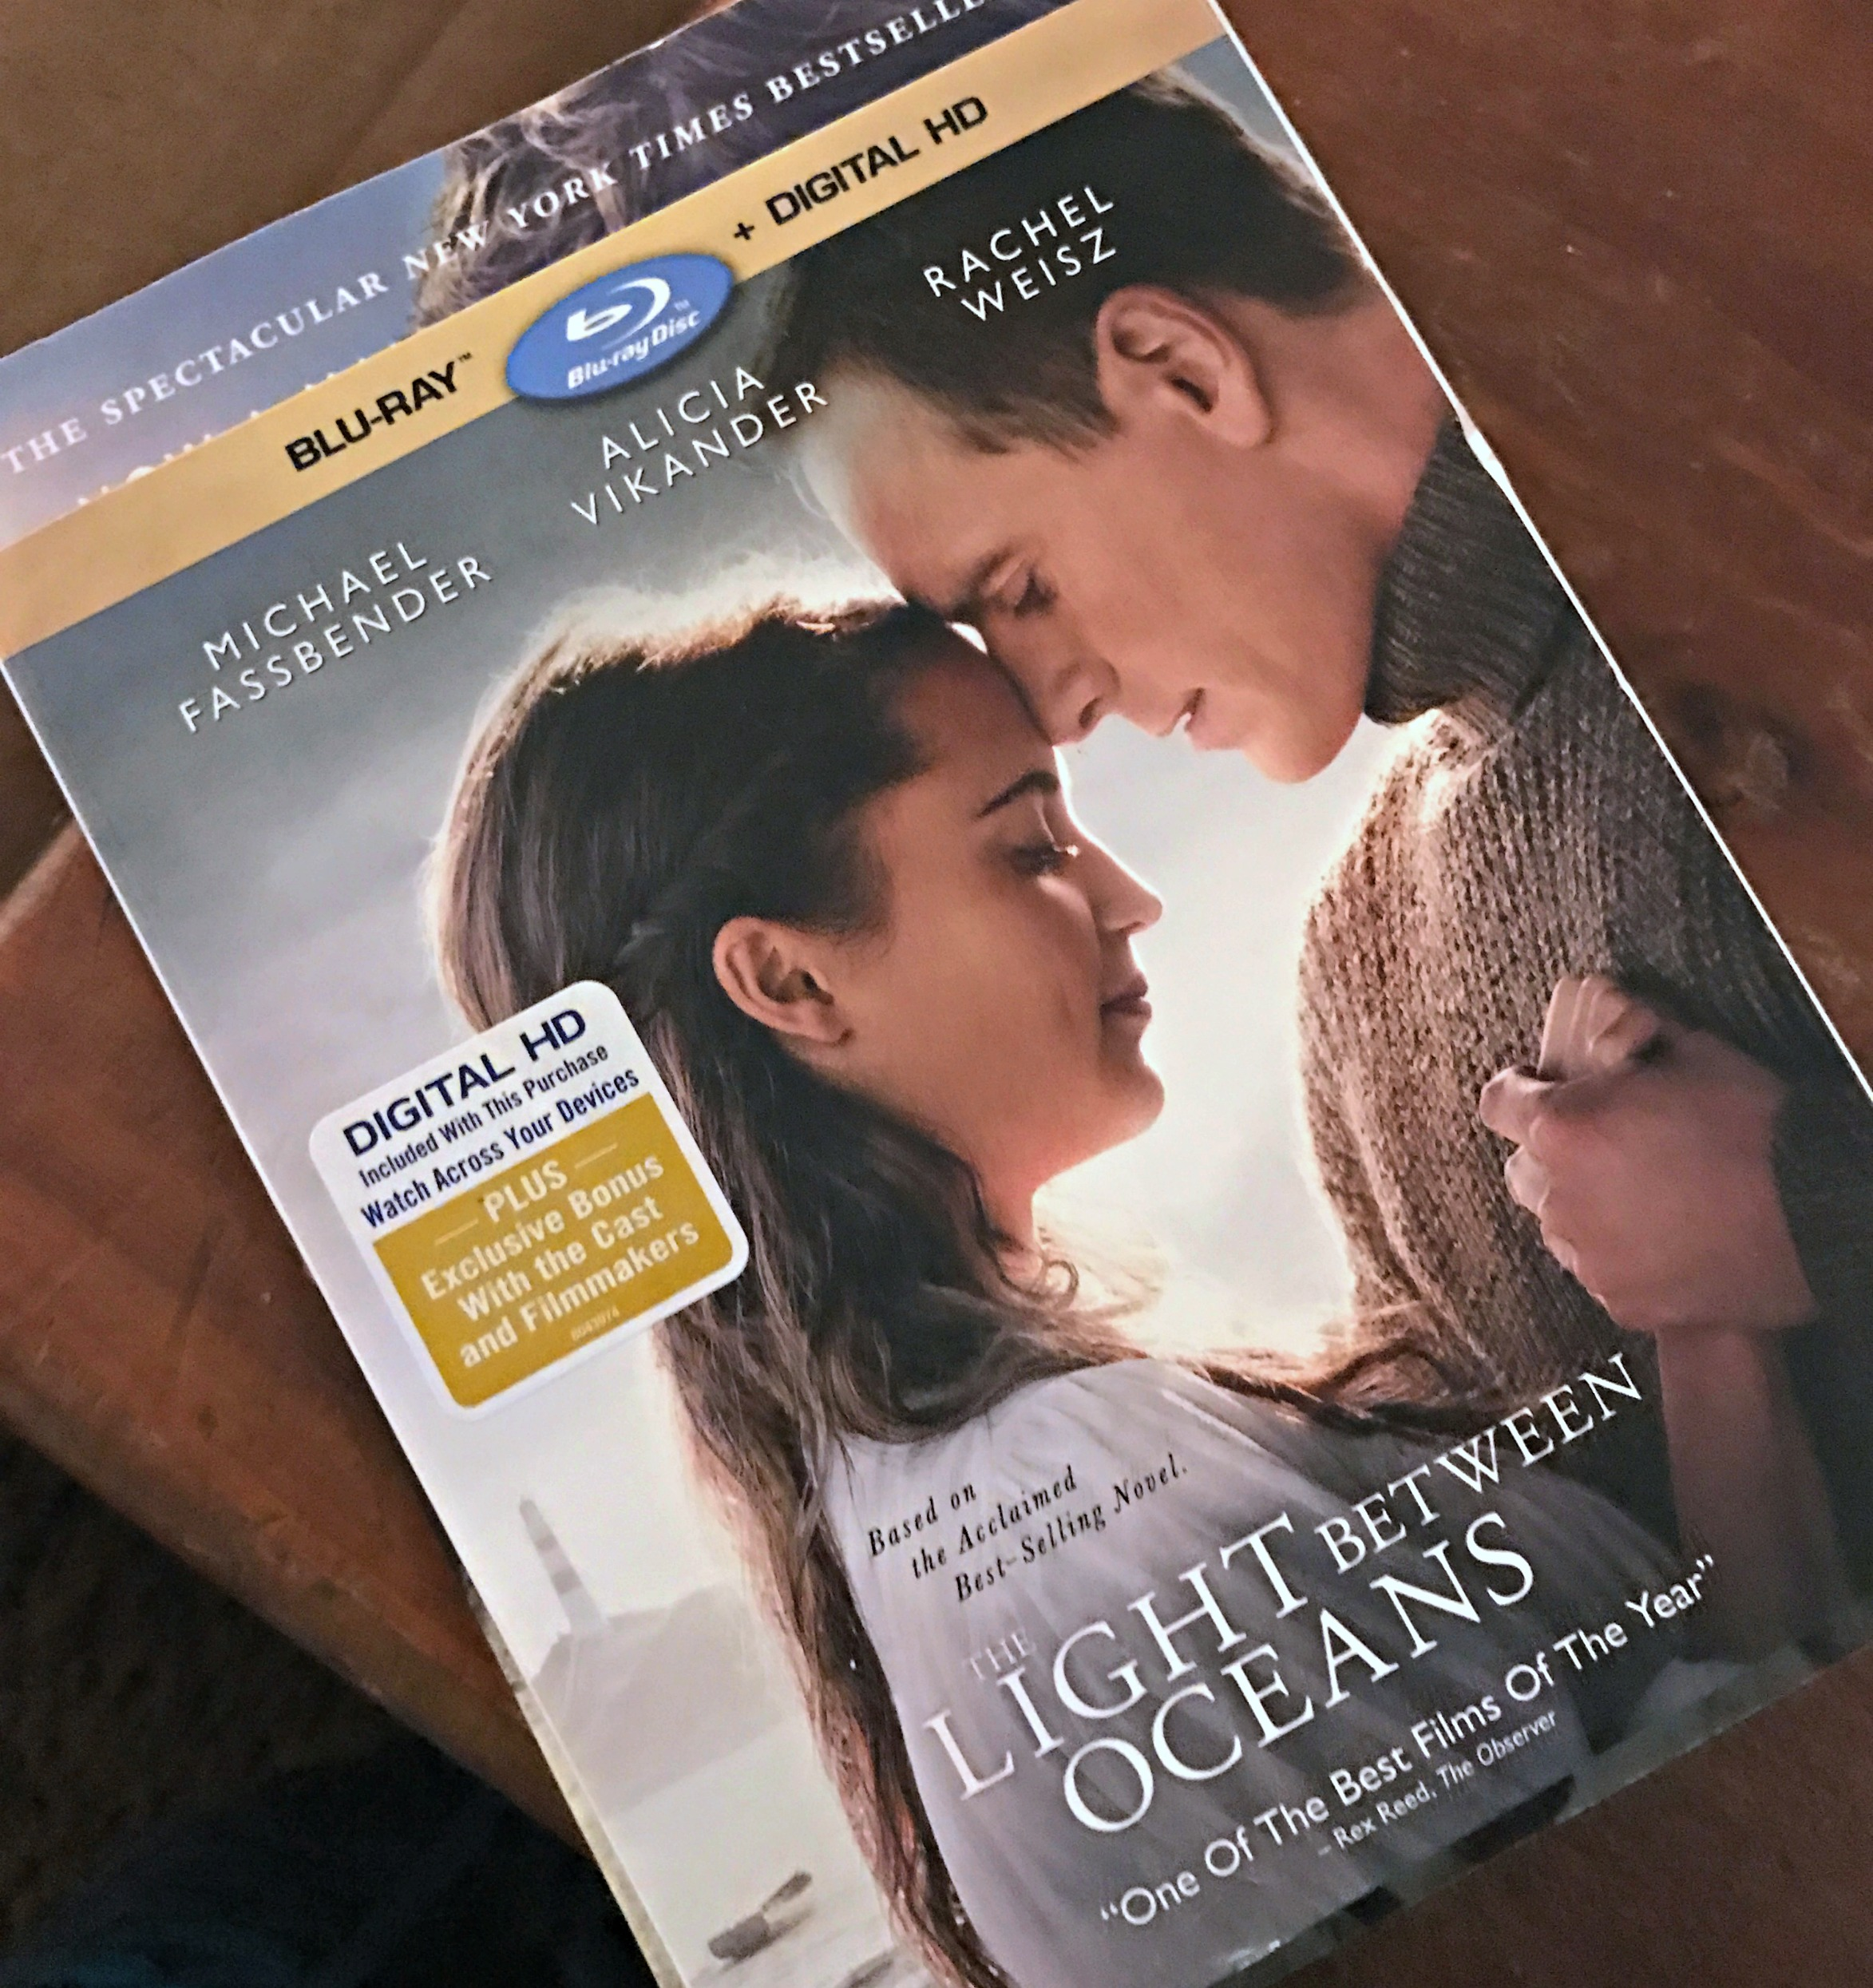 Sharing The Light Between Oceans with my Sisters